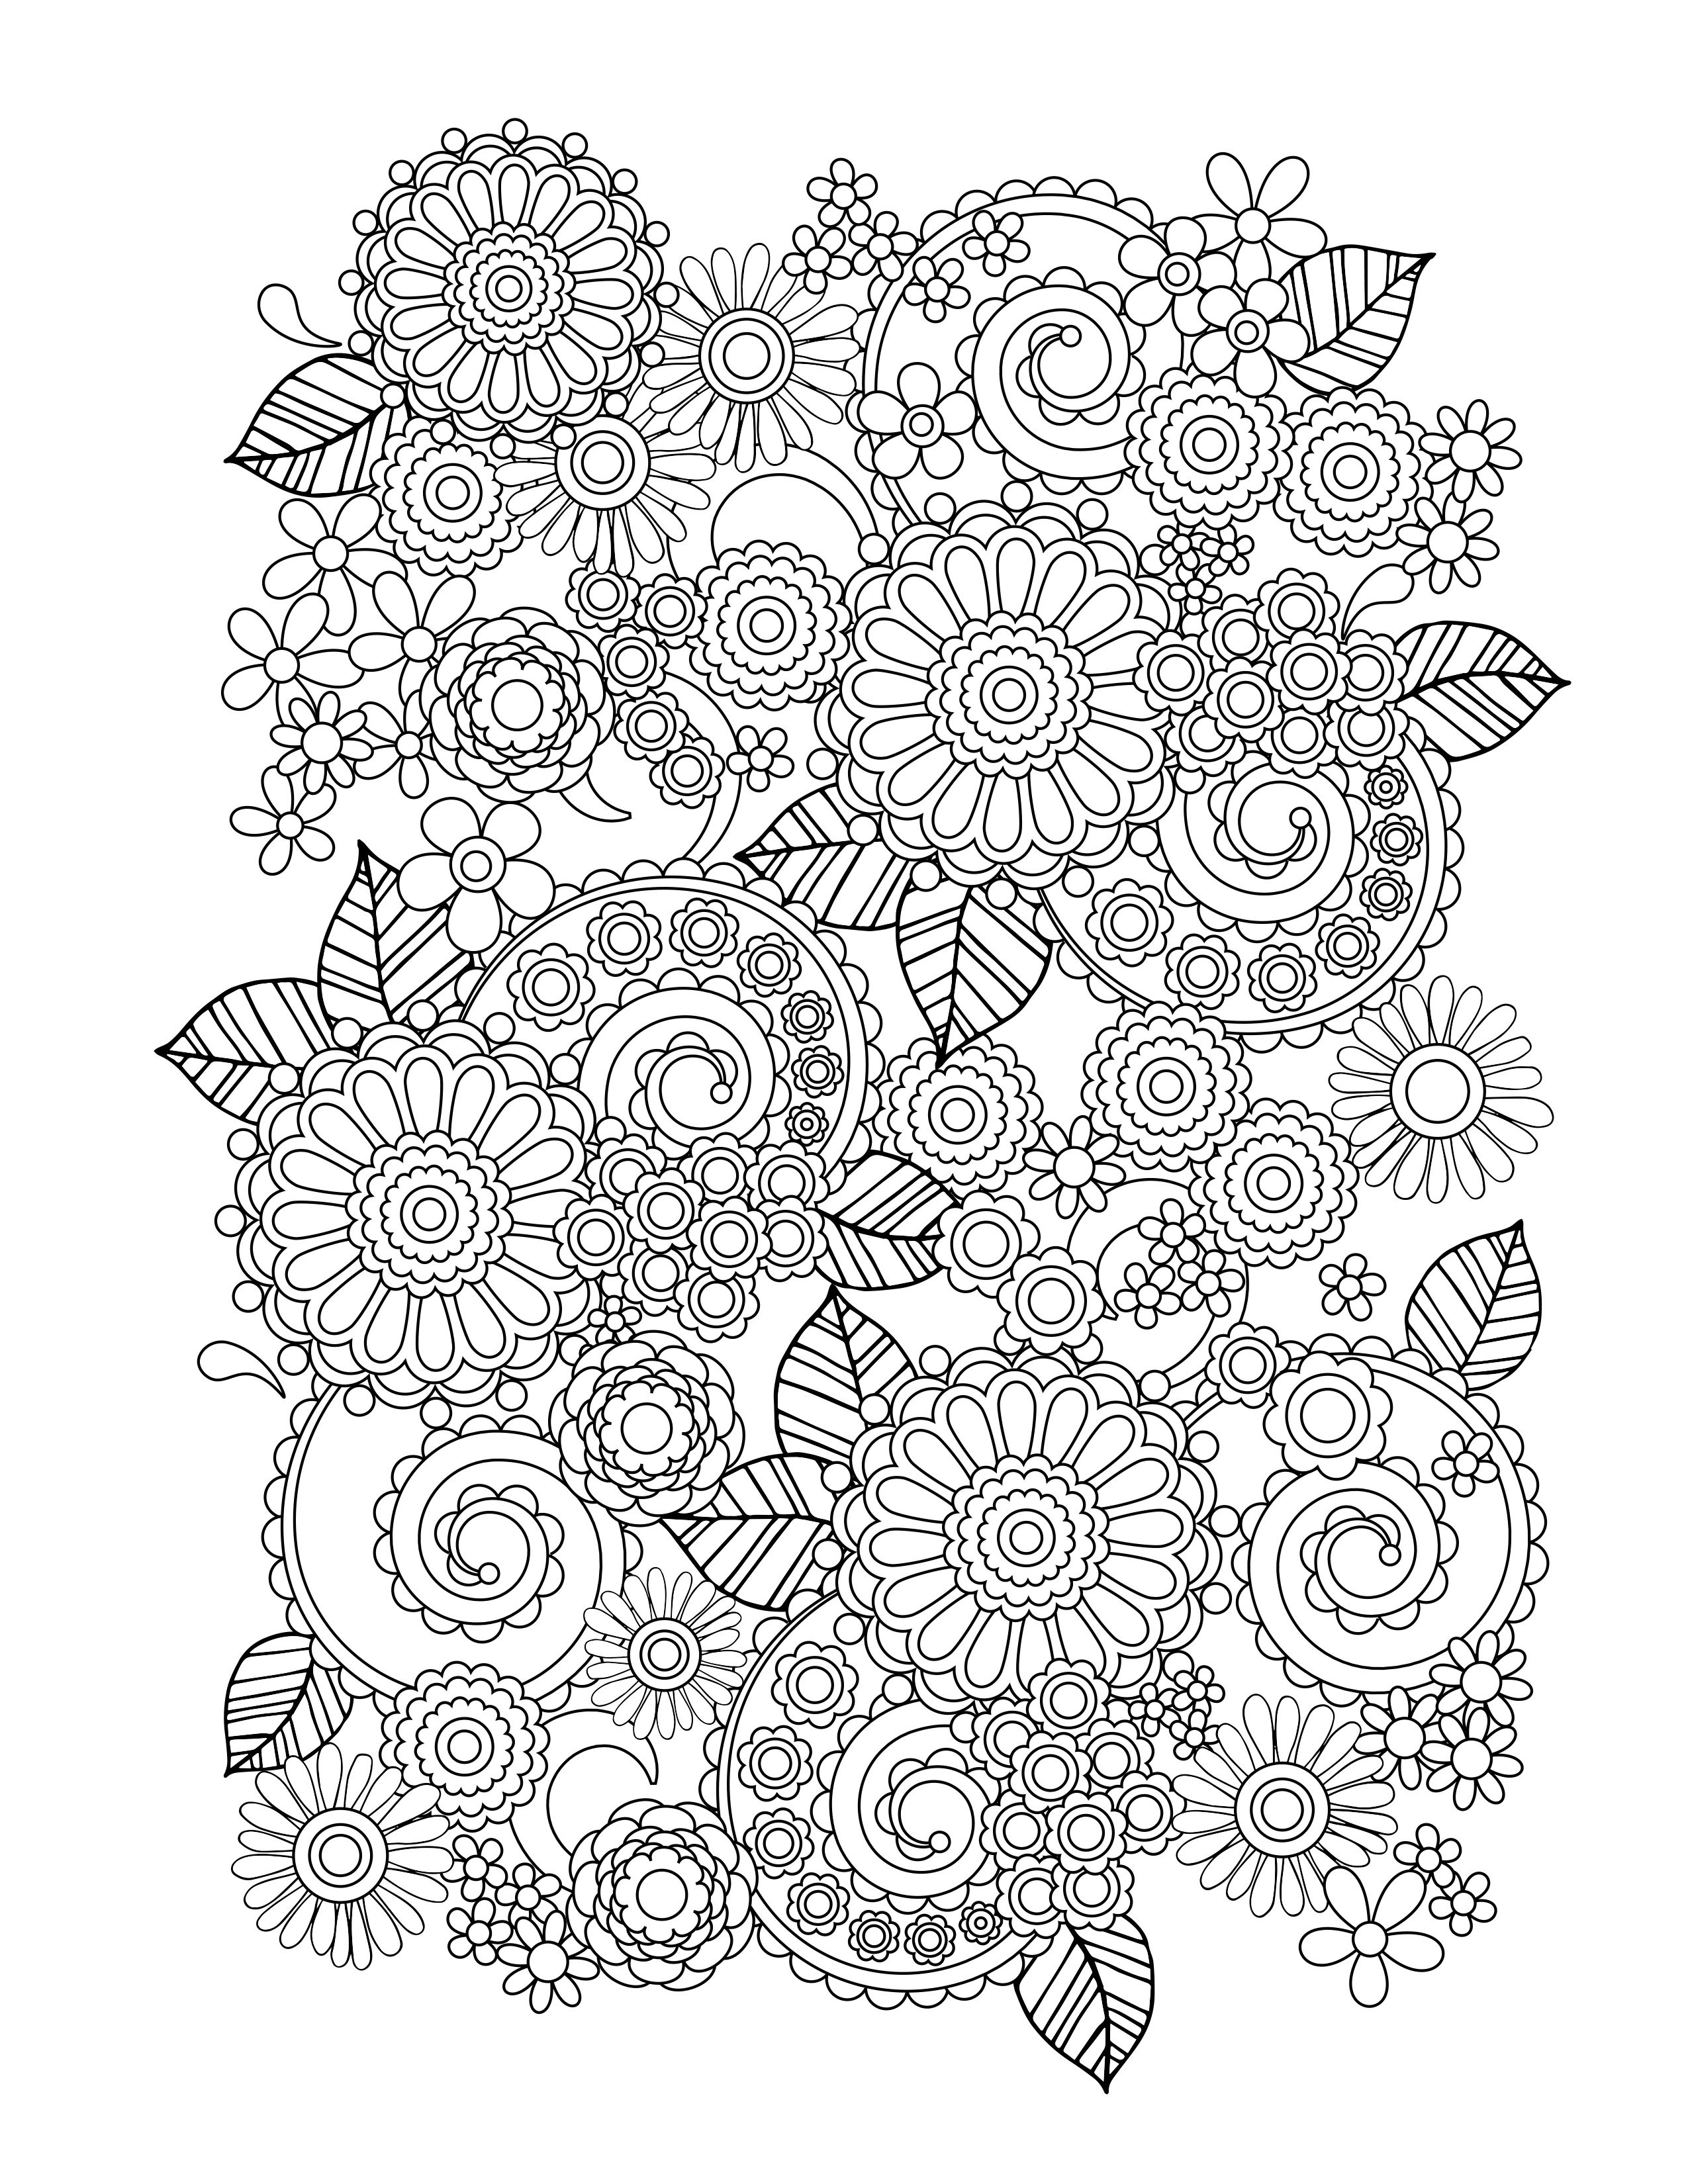 free flower coloring pages for adults adult coloring page petunias the graphics fairy coloring flower free for adults pages